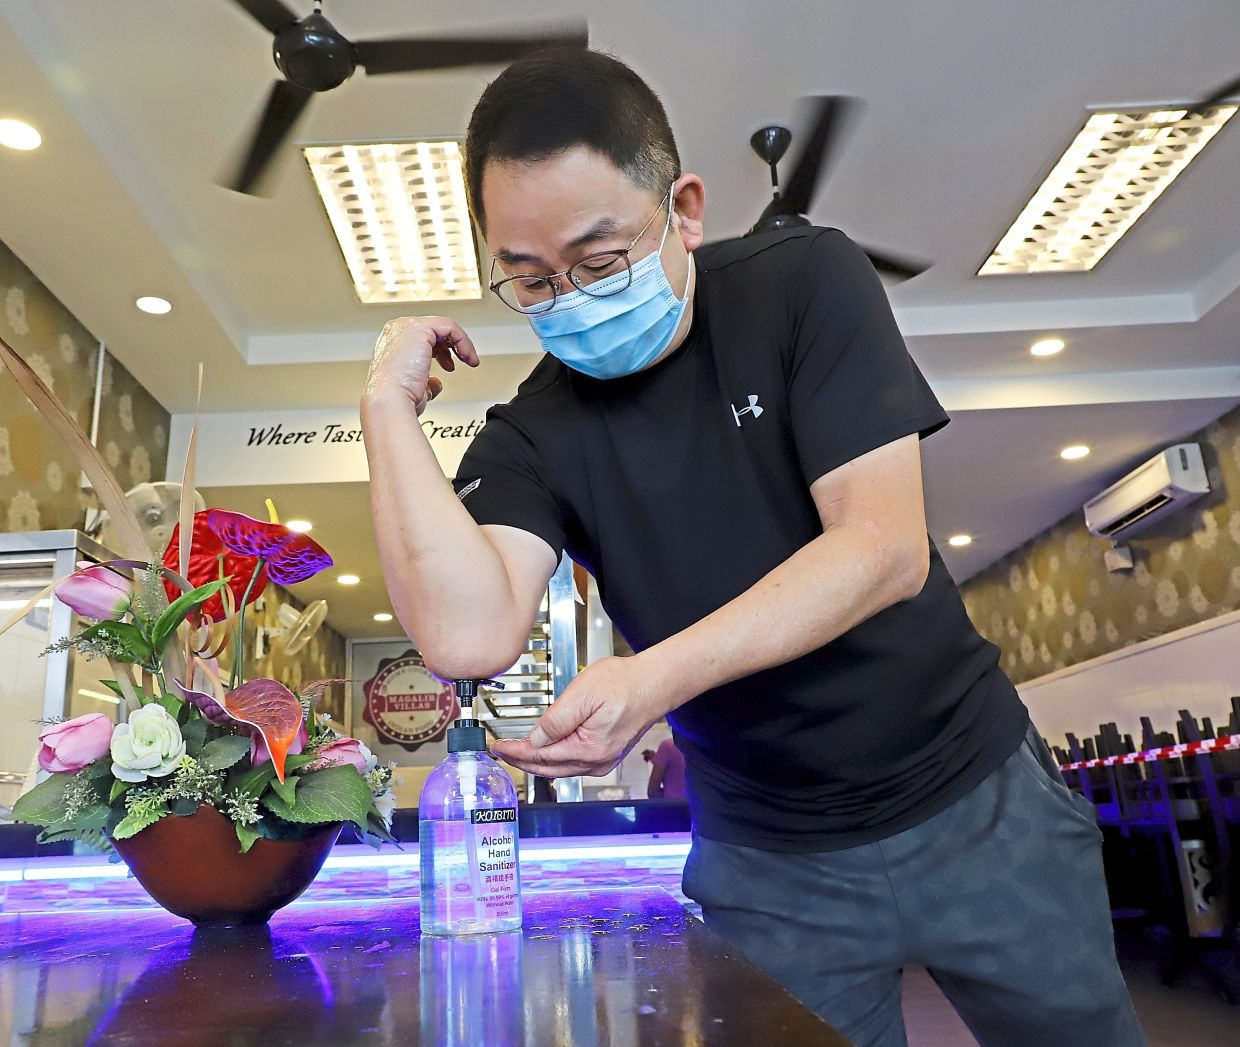 Sanitising or washing your hands regularly and wearing a face mask while in public not only helps prevent the spread of Covid-19, but also all other respiratory infections. — LIM BENG TATT/The Star